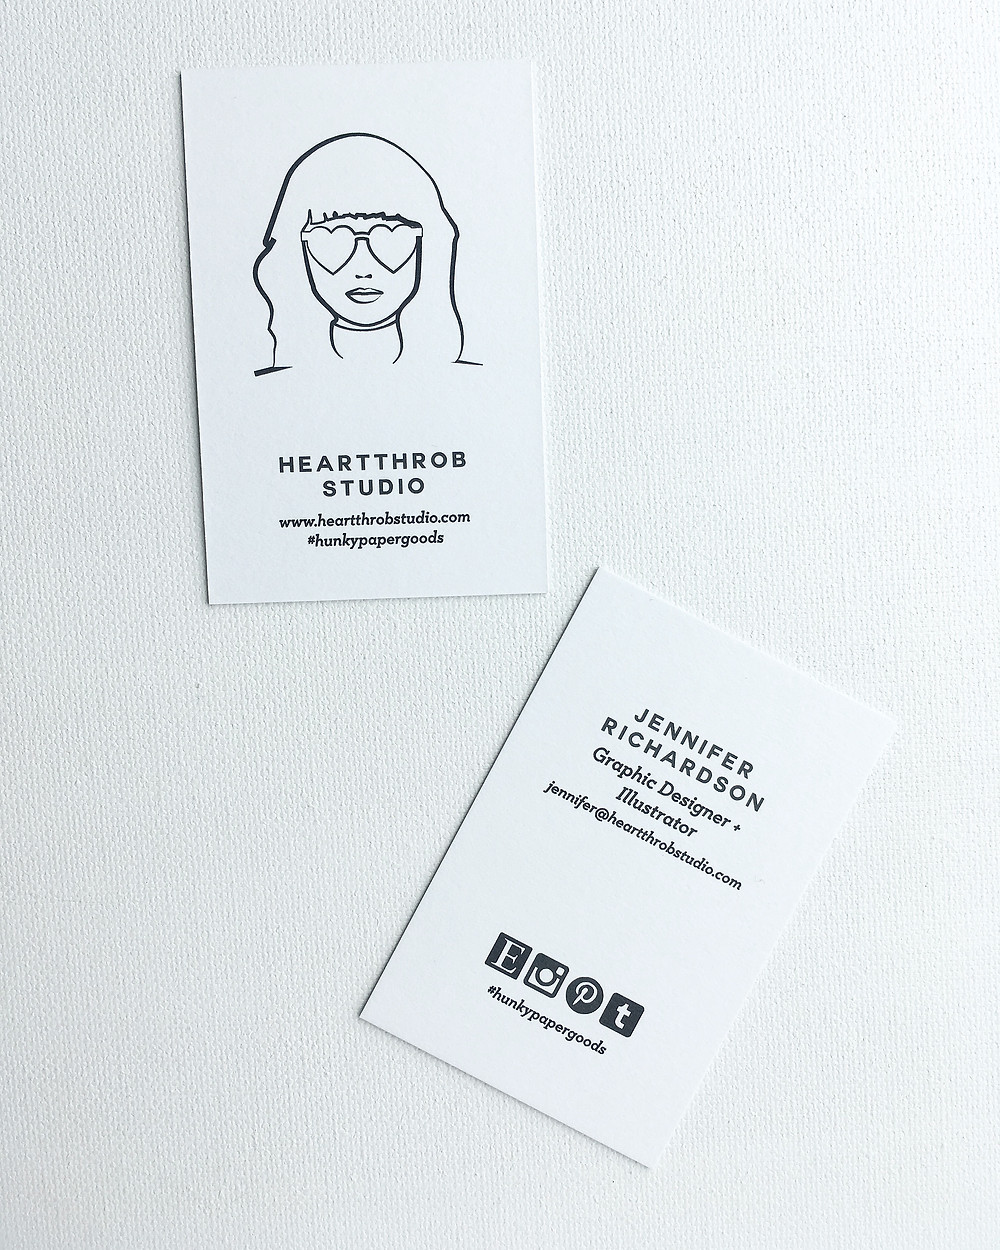 Heartthrob Studio Business Card, Logo